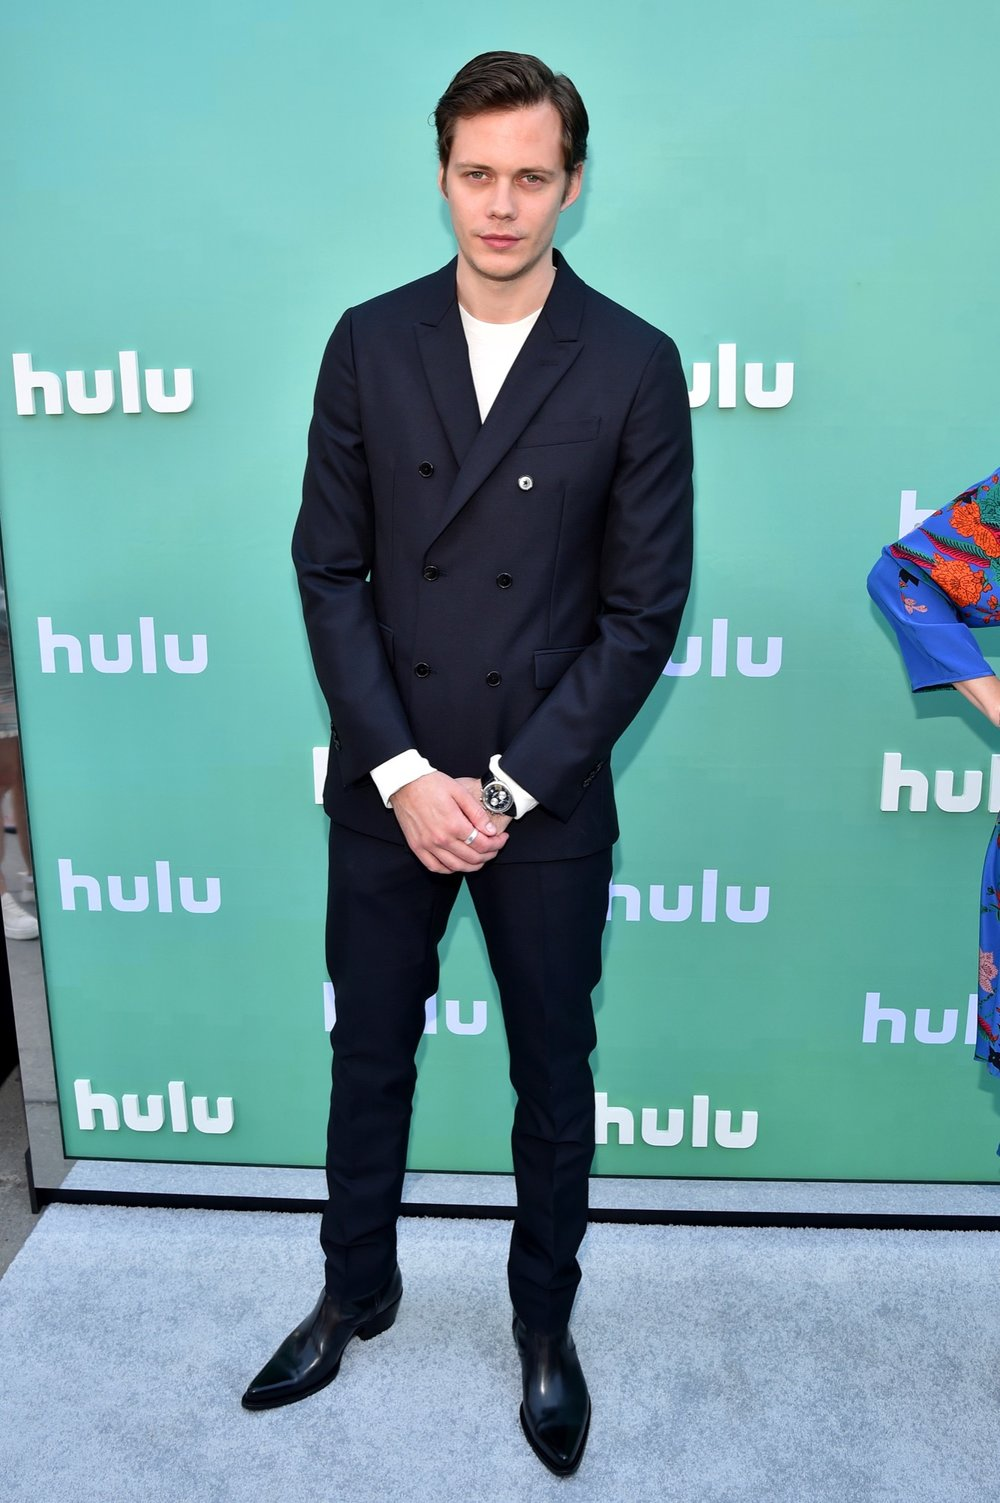 NEW YORK, NY - MAY 02:  Bill Skarsgard attends the Hulu Upfront 2018 Brunch at La Sirena on May 2, 2018 in New York City.  (Photo by Bryan Bedder/Getty Images for Hulu) *** Local Caption *** Bill Skarsgard